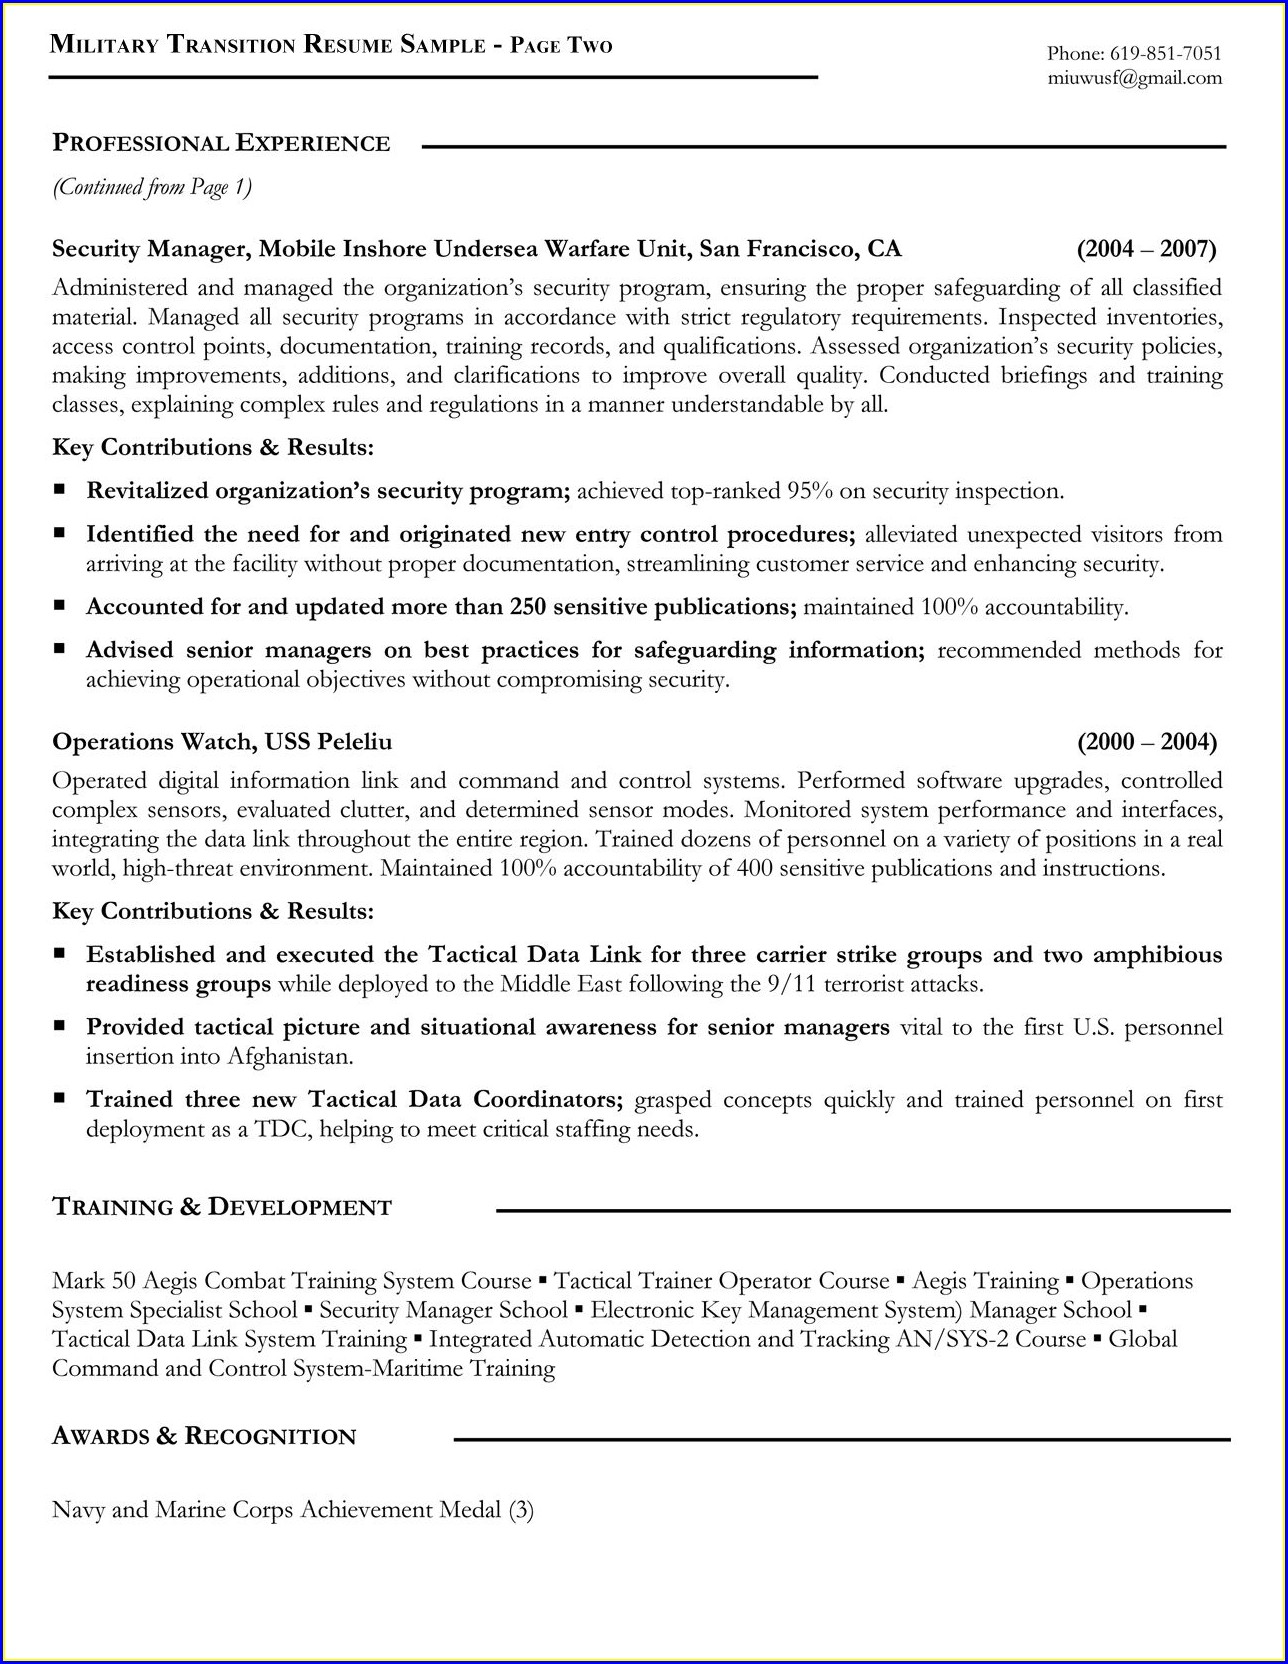 Free Resume Templates For Veterans